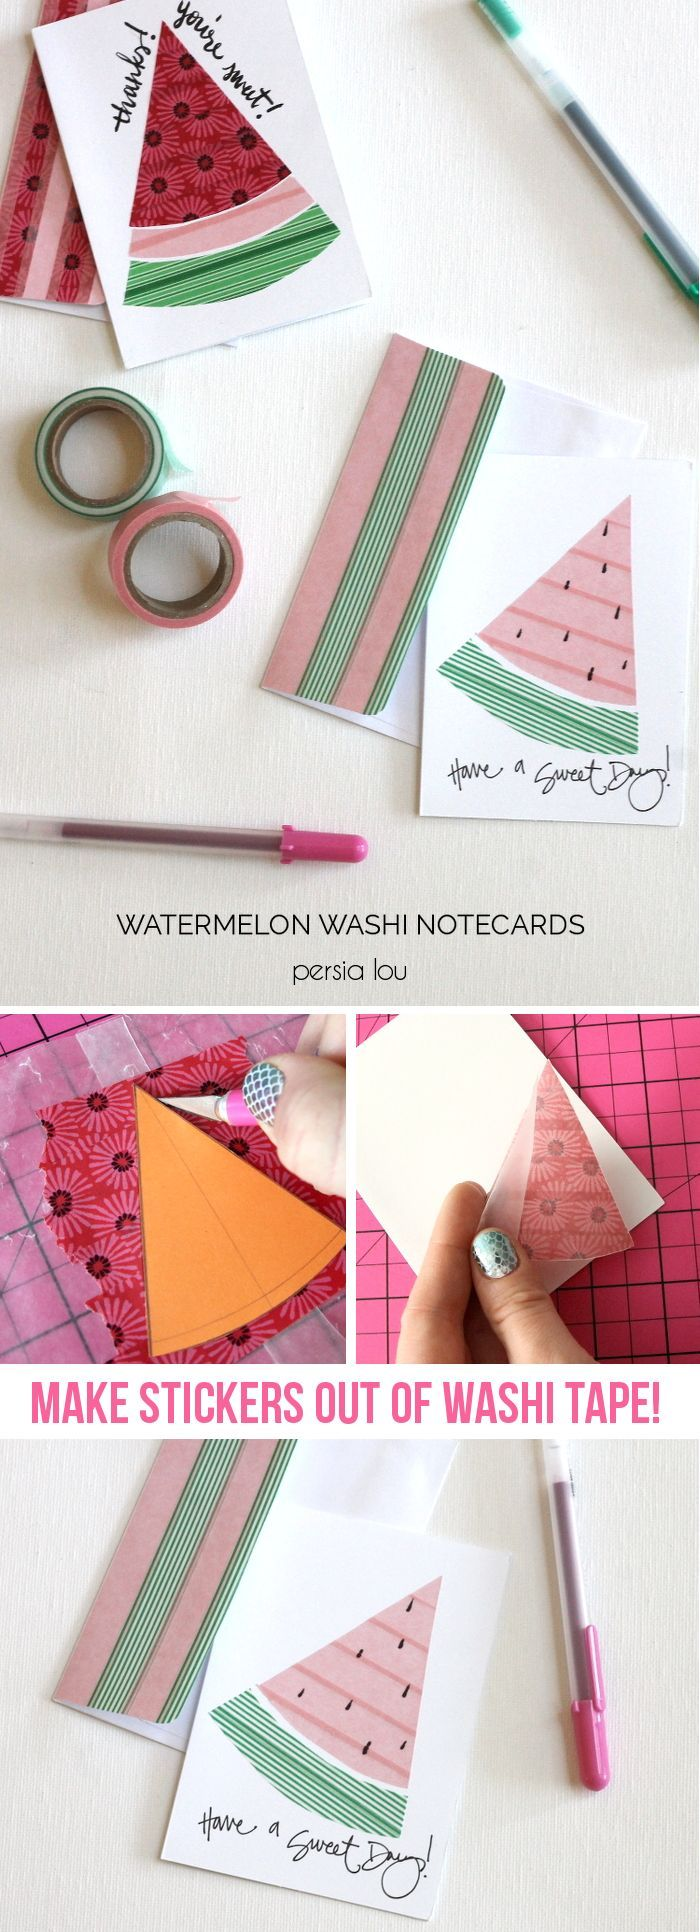 Learn how to make washi tape stickers